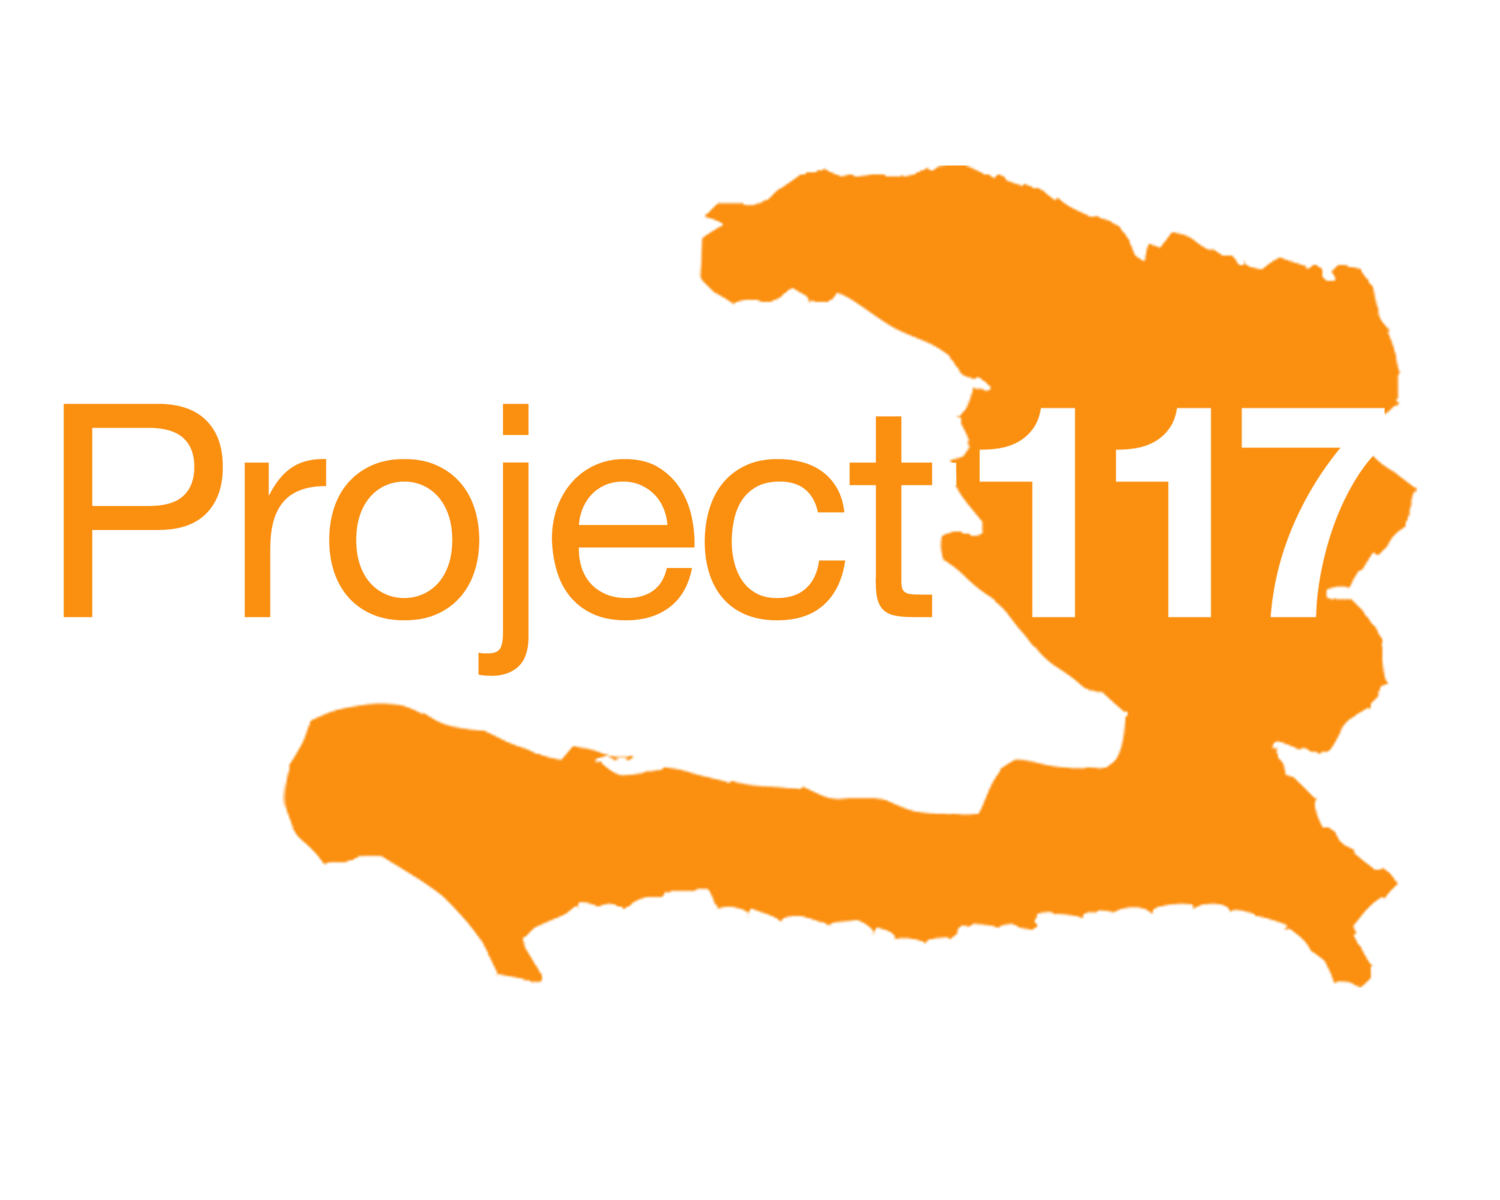 Project 117